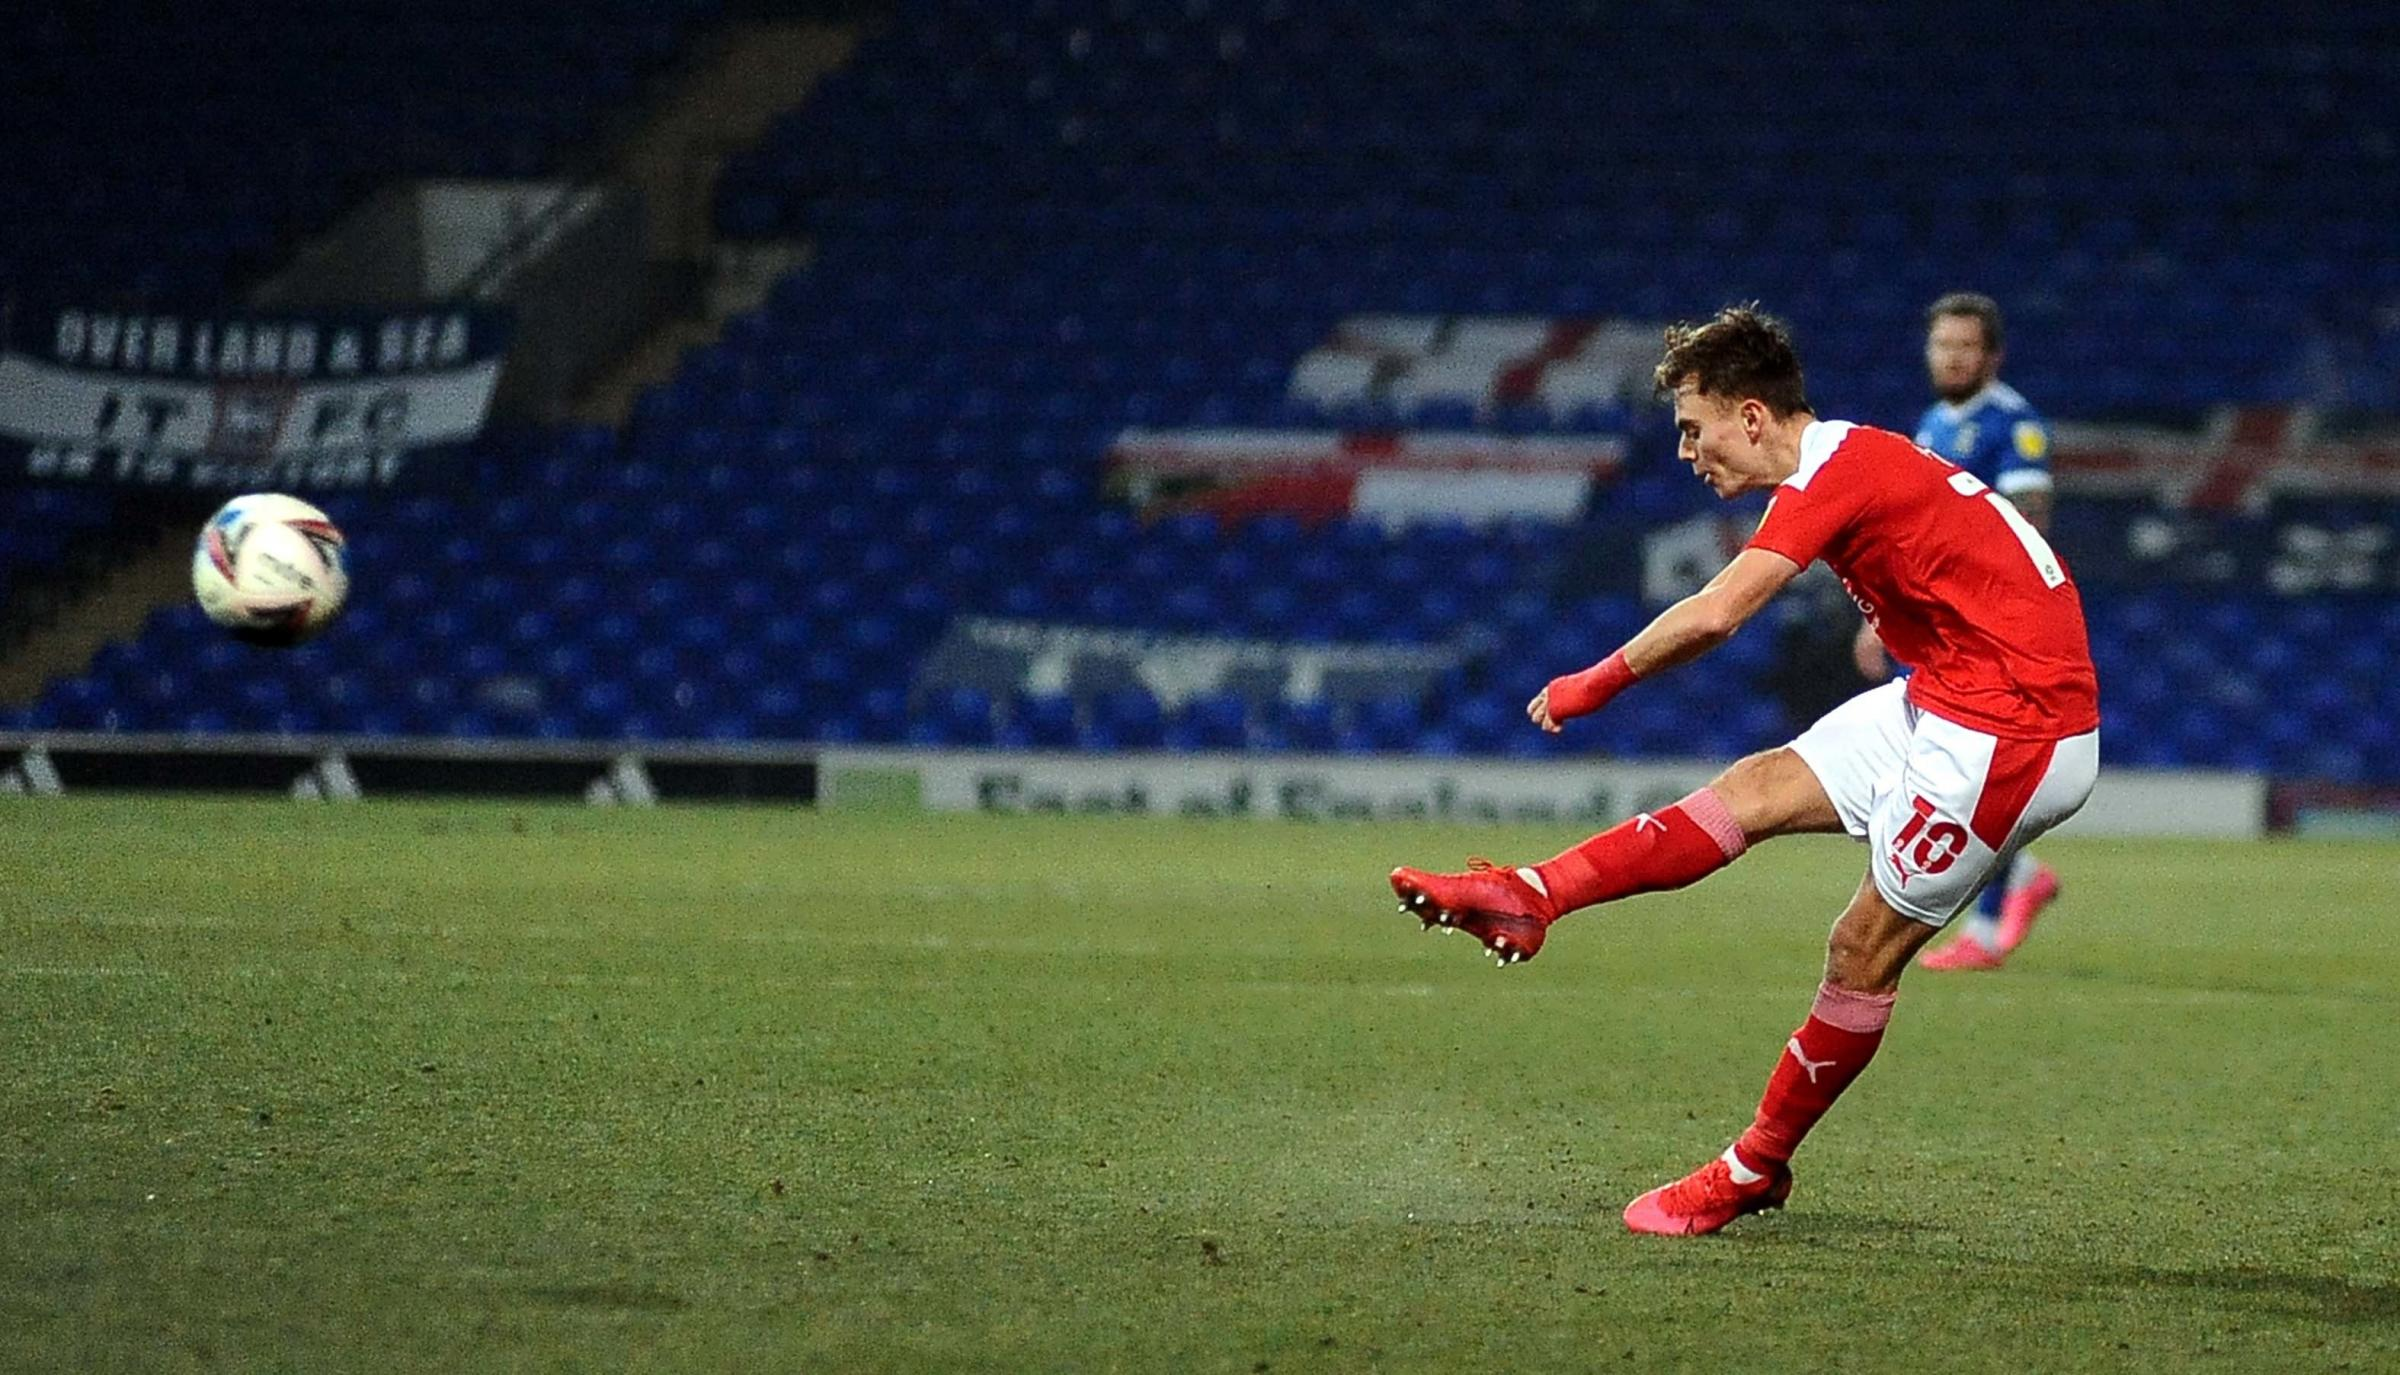 Adver Sport gallery from Ipswich Town 2 Swindon Town 3